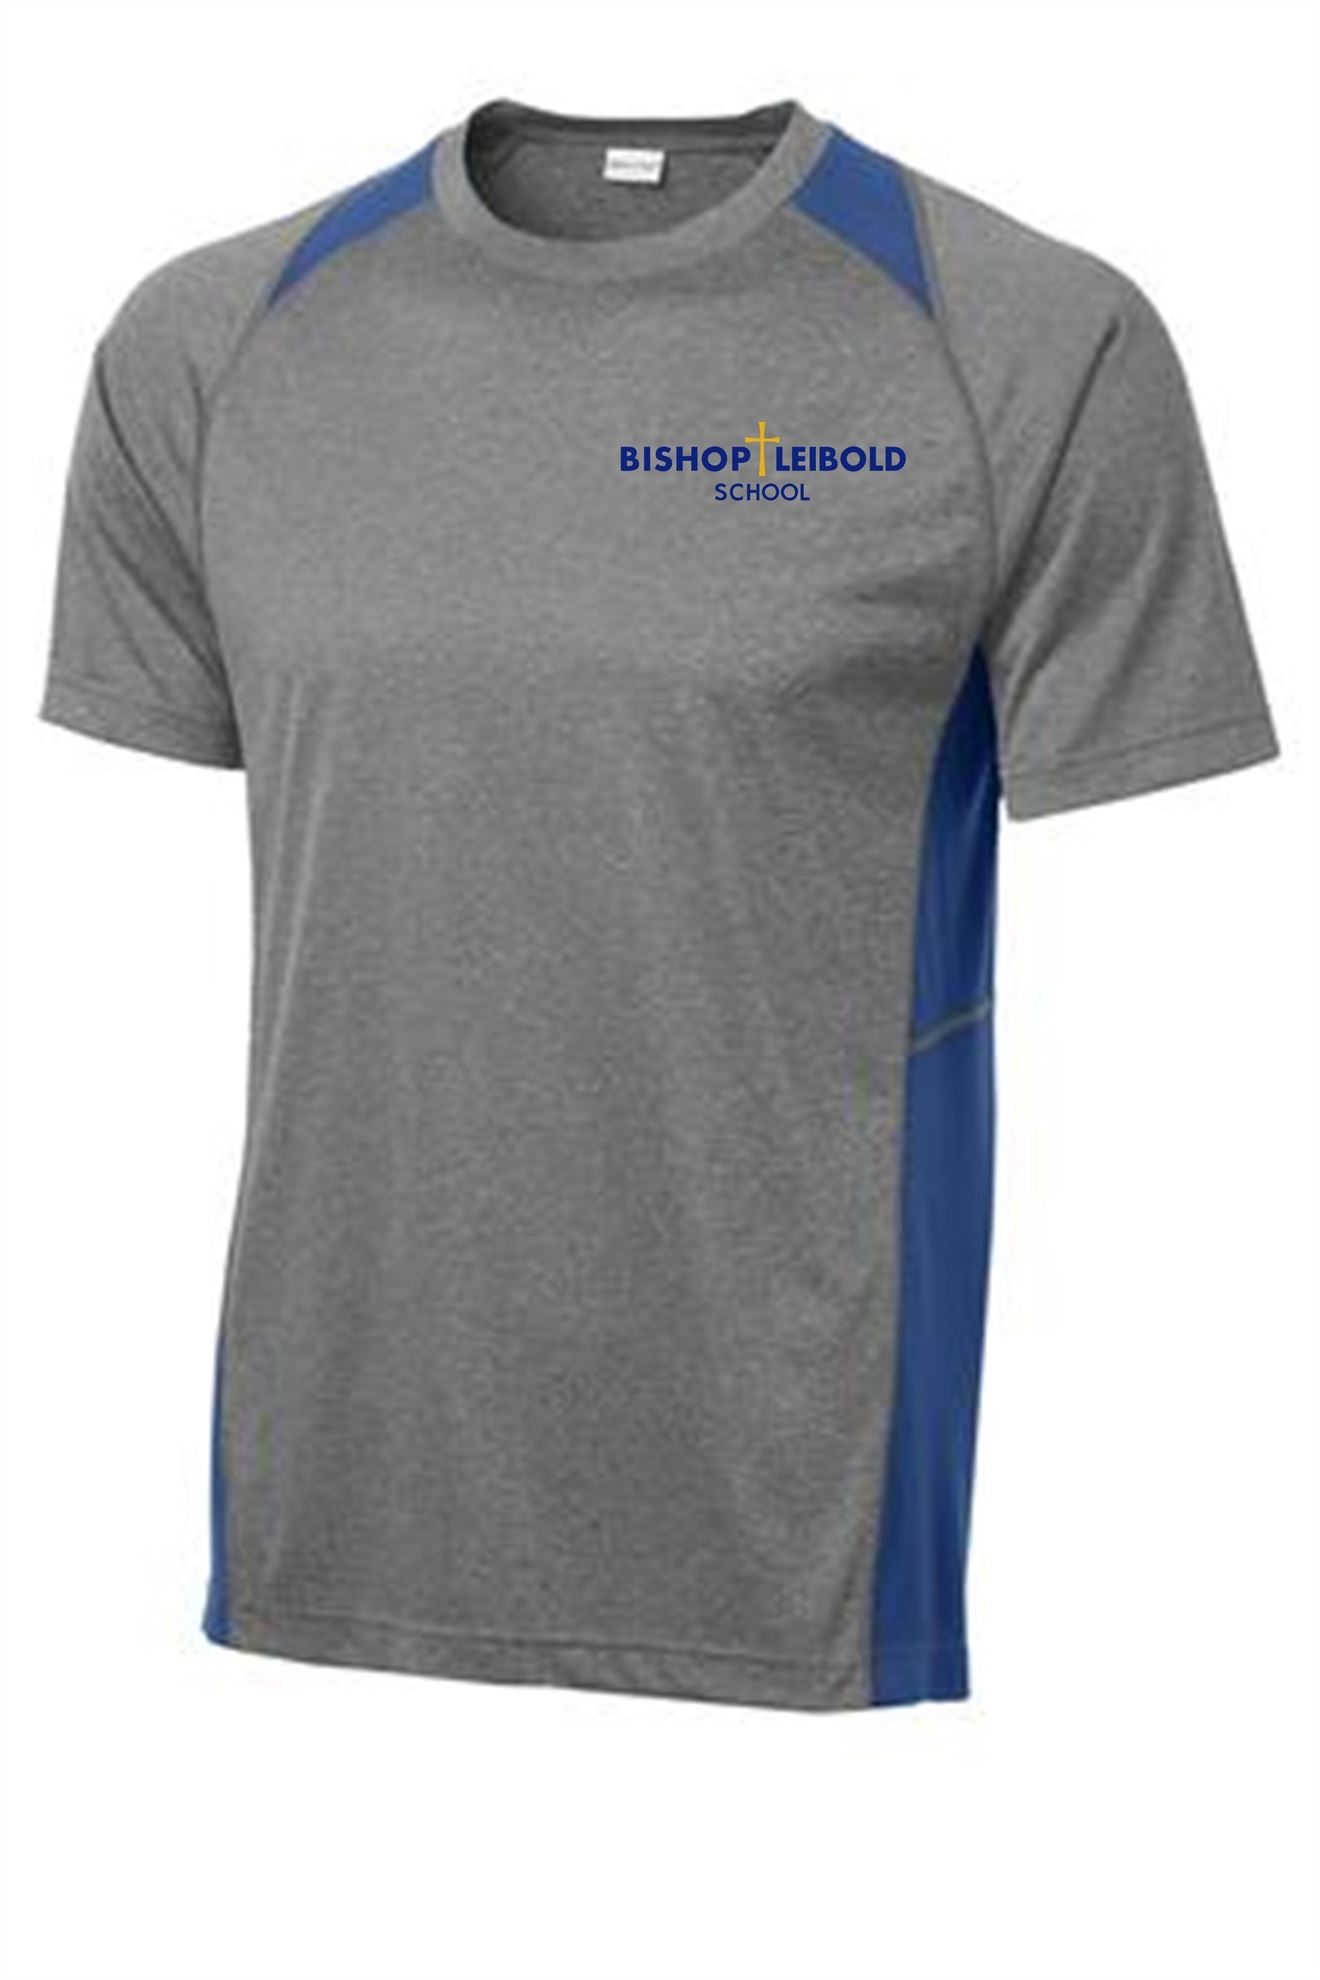 The Spirit In You Bishop Leibold Unisex Dri Fit Tee By Sport Tek St361 Grey Gold Or Grey Royal Blue Designed for the ultimate in performance, this polo has an understated vertical mesh texture. bishop leibold unisex dri fit tee by sport tek st361 grey gold or grey royal blue